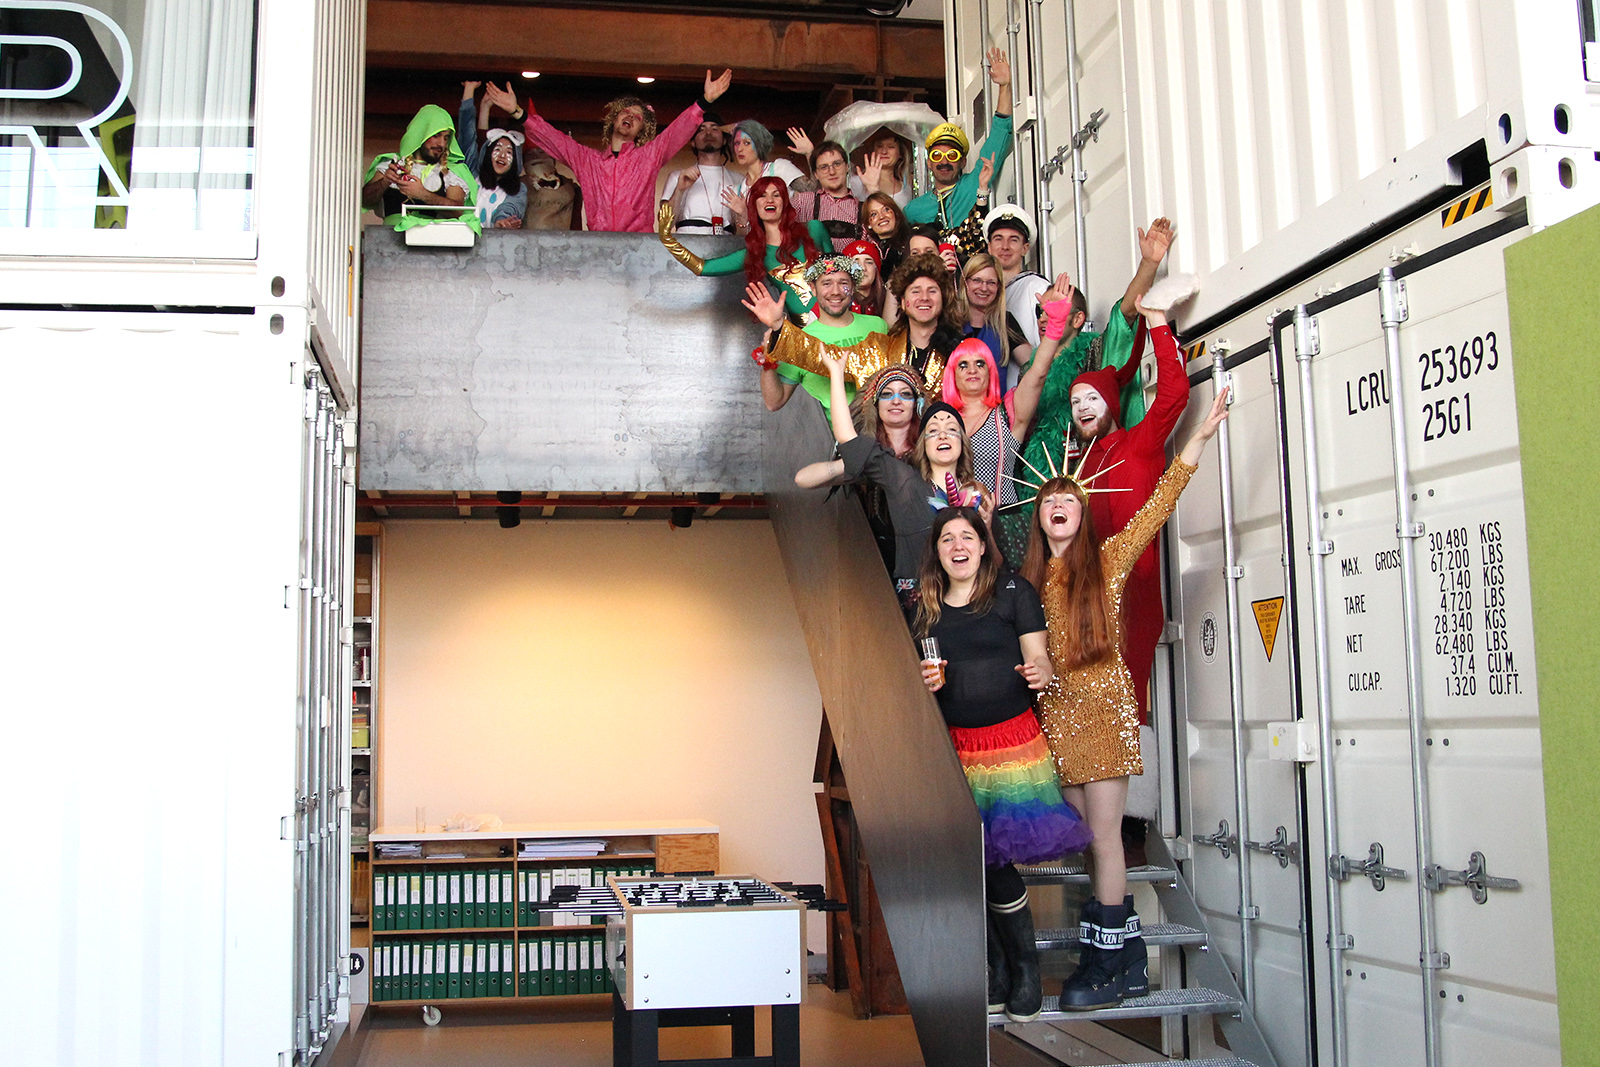 Photo Salon K all employees dressed up on stairs hands up